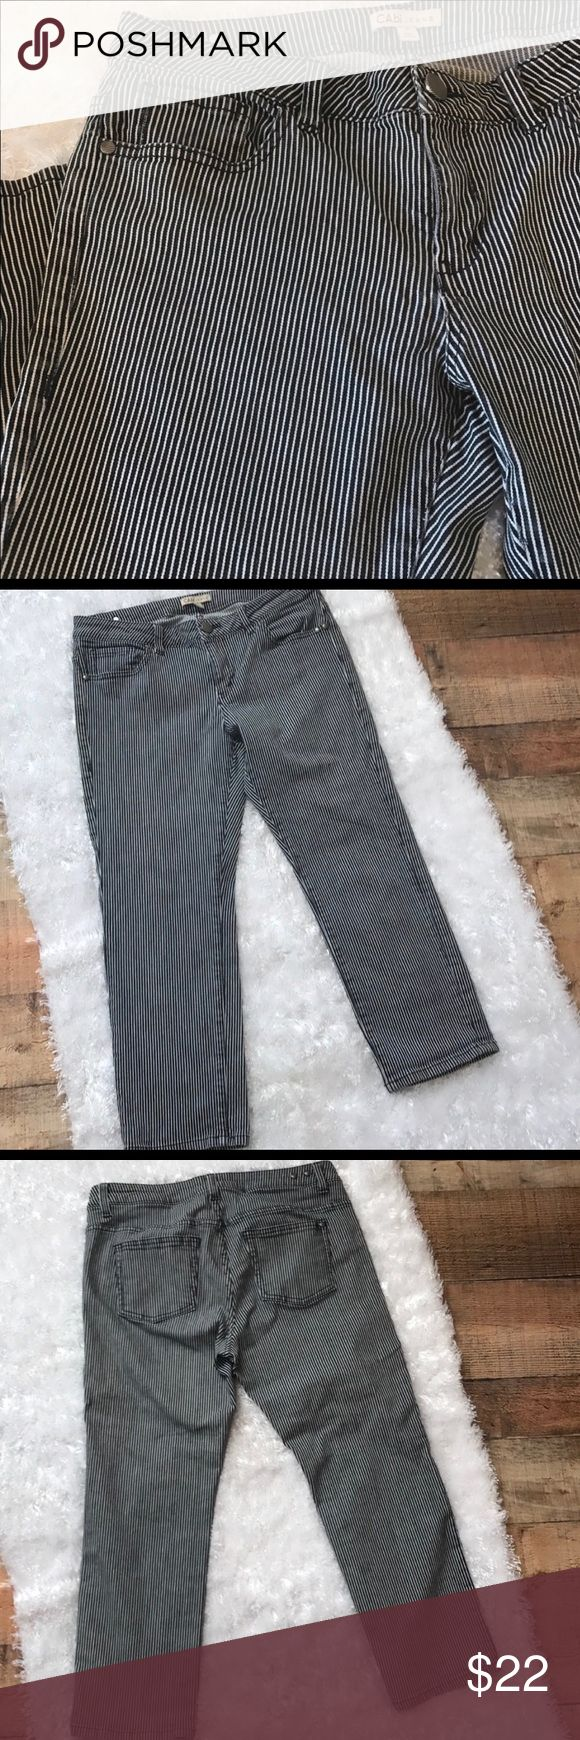 """⤵️ $22 CAbi Engineer Stripe Cropped Jeans Railroad Pinstripe Jeans Sz 8 Cotton Blend snazzy detail  5 pocket  Length approx 33""""  Inseam 25"""" Waist 34 """" Rise 9"""" Hem 14"""" Capri Cropped  Gently used with no flaws. #324 CAbi Jeans Ankle & Cropped"""